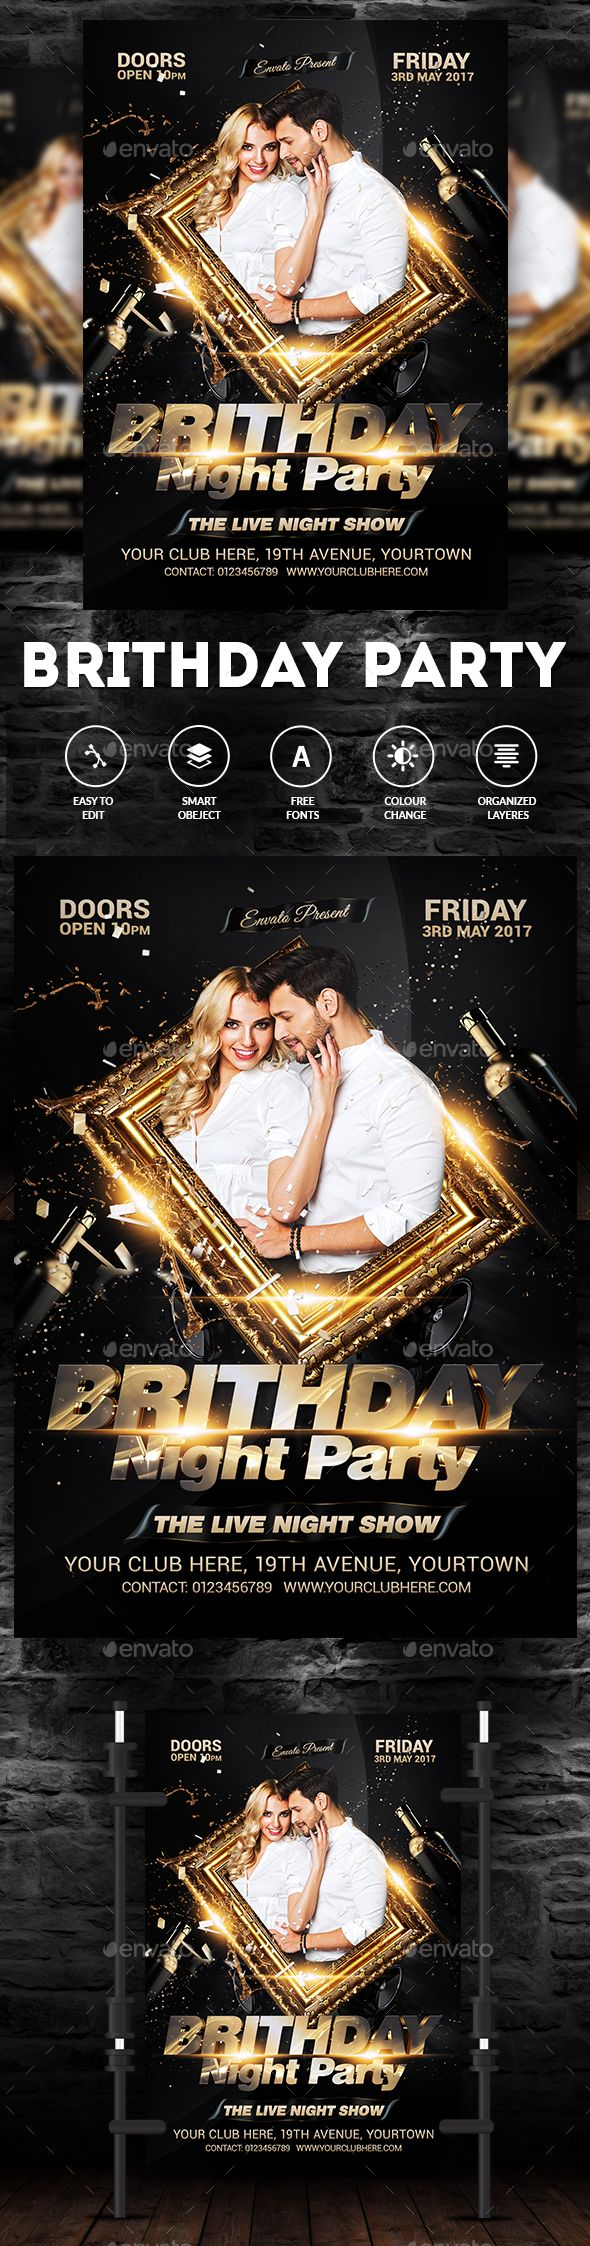 Birthday Party Flyer — Photoshop PSD #celebration #birthday party • Available here → https://graphicriver.net/item/birthday-party-flyer/18040747?ref=pxcr